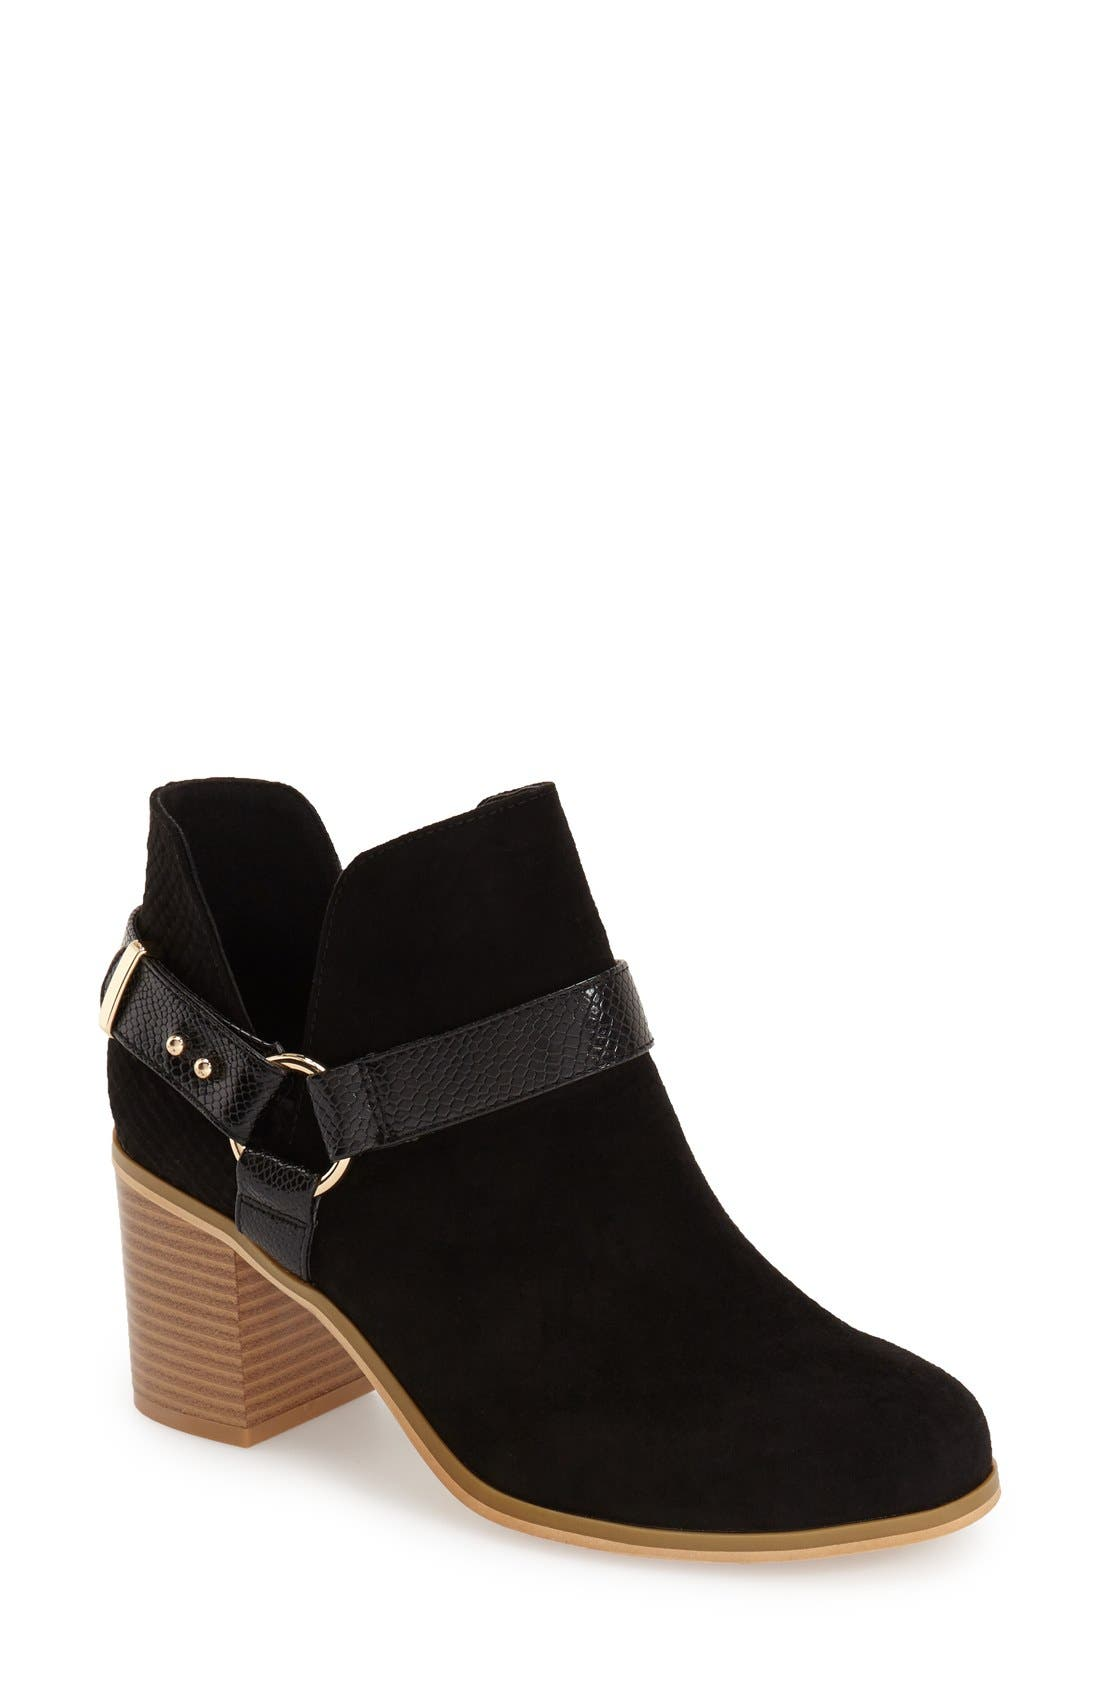 Main Image - Topshop 'Beckley' Ring Strap Bootie (Women)